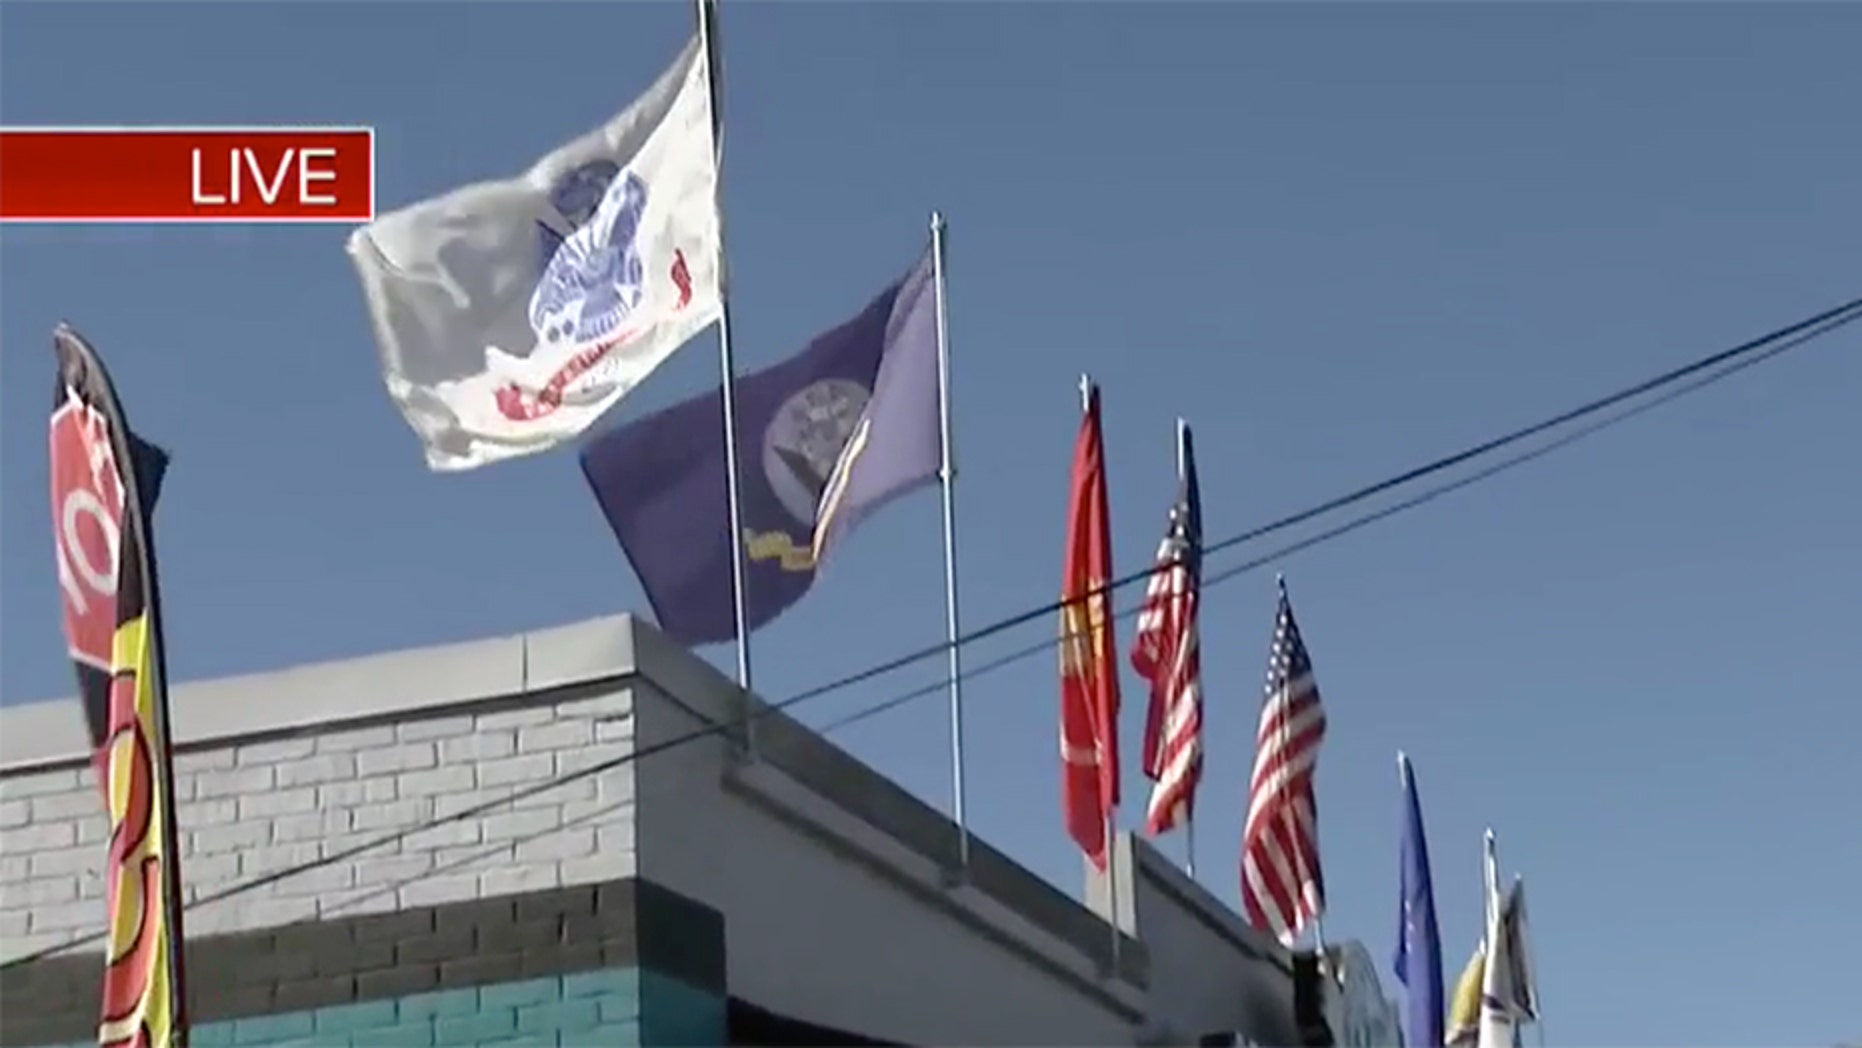 Jaguar Power Sports in Jacksonville, Fla., was cited Monday for flying military flags.